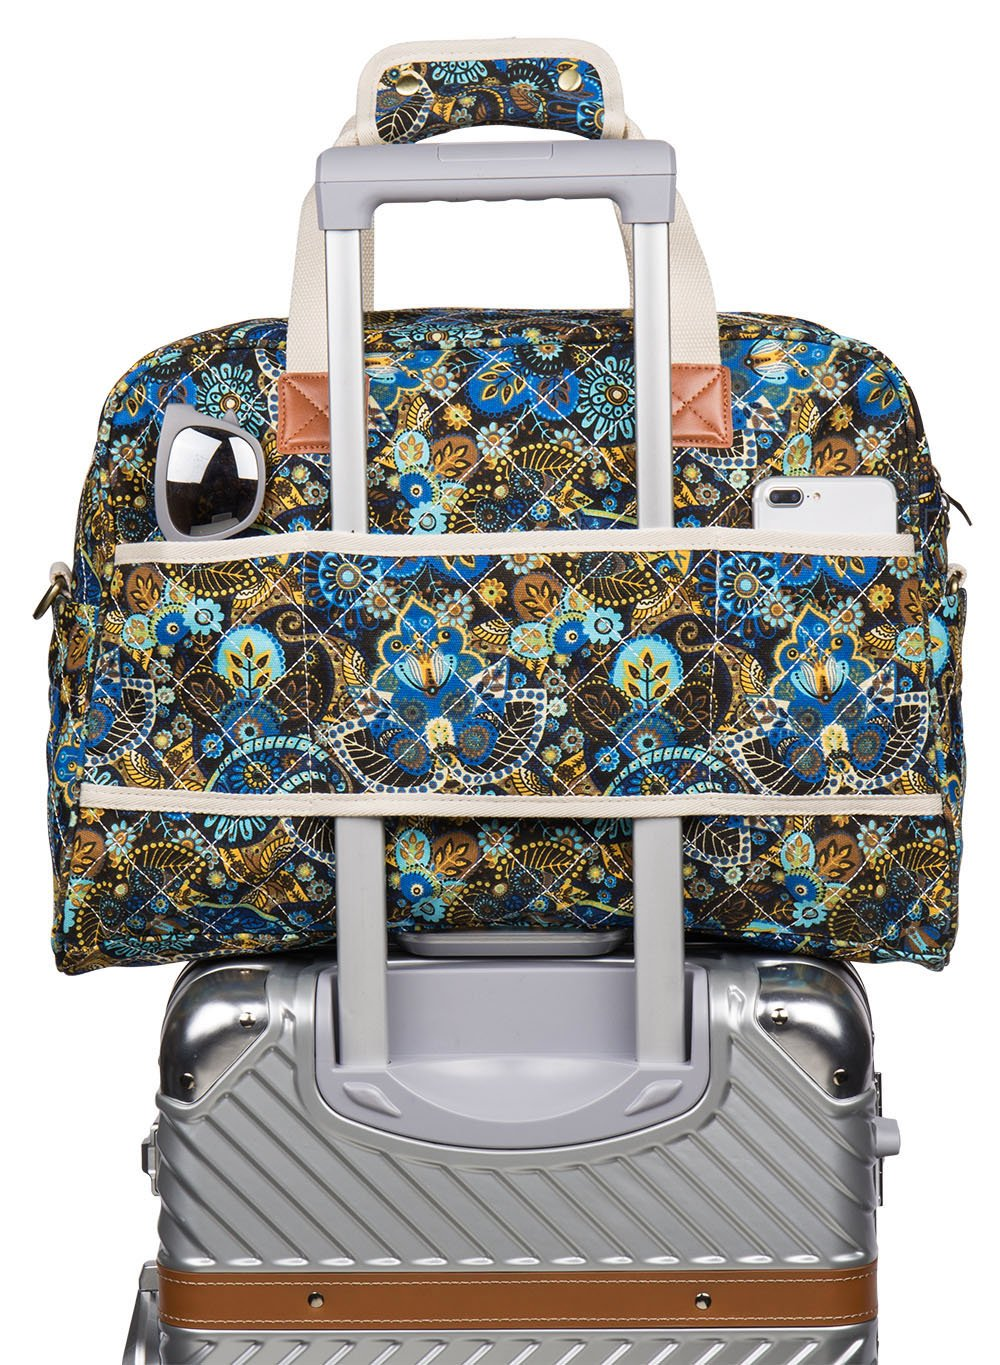 Malirona Canvas Overnight Bag Women Weekender Bag Carry On Travel Duffel Bag Floral (Black Flower) by Malirona (Image #6)